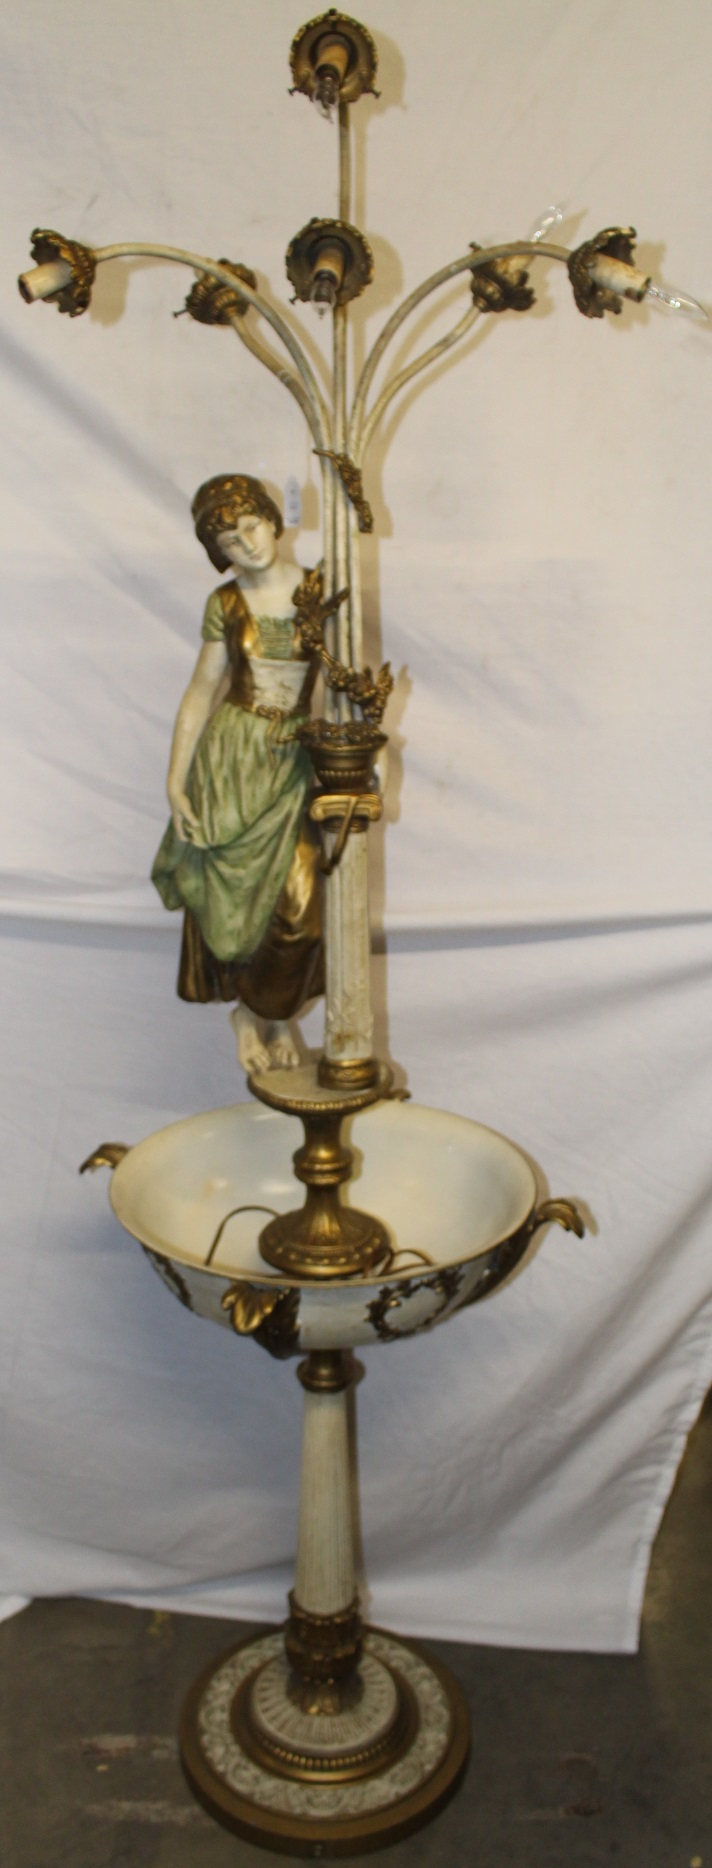 Vintage Fountain Light with Goddess